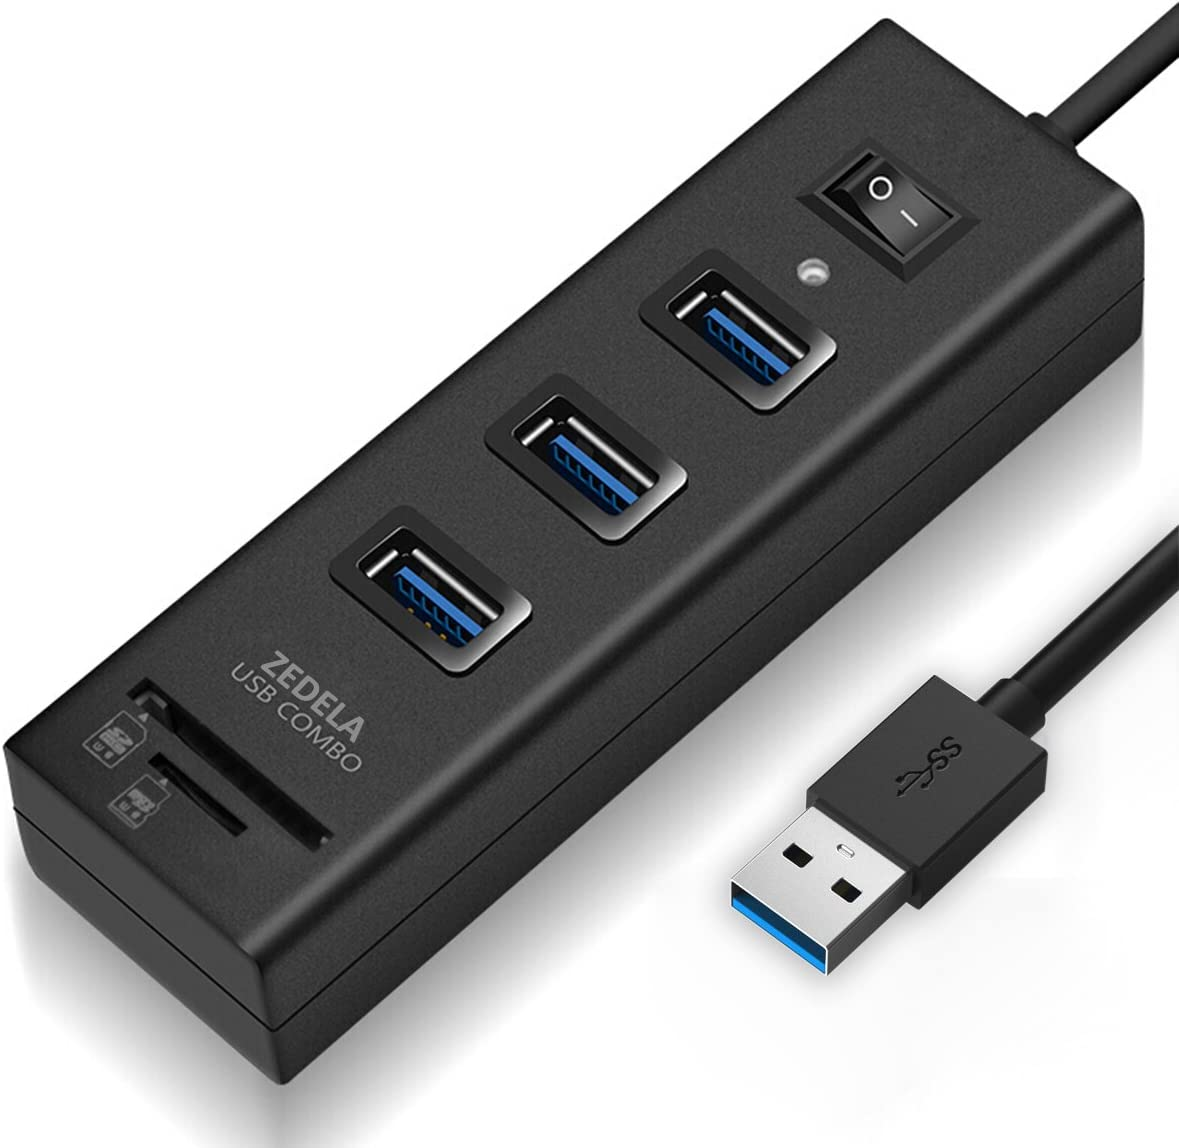 USB 3.0 OTG USB Hub with SD Card Reader Function USB hub Multifunction 2 in 1 Micro USB